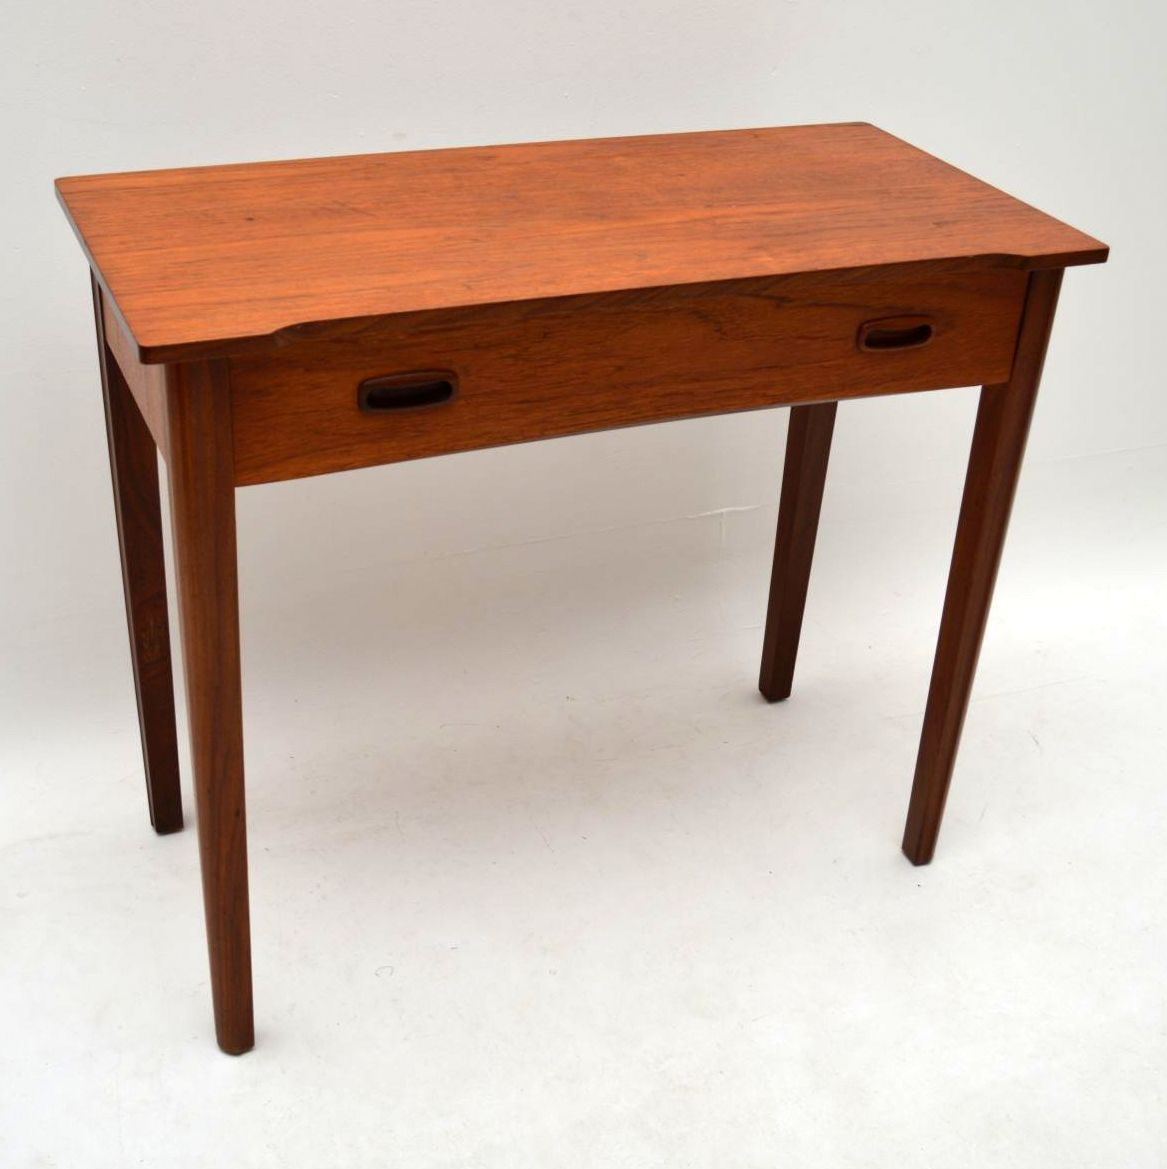 Retro teak side table desk vintage 1960 s for Retro side table